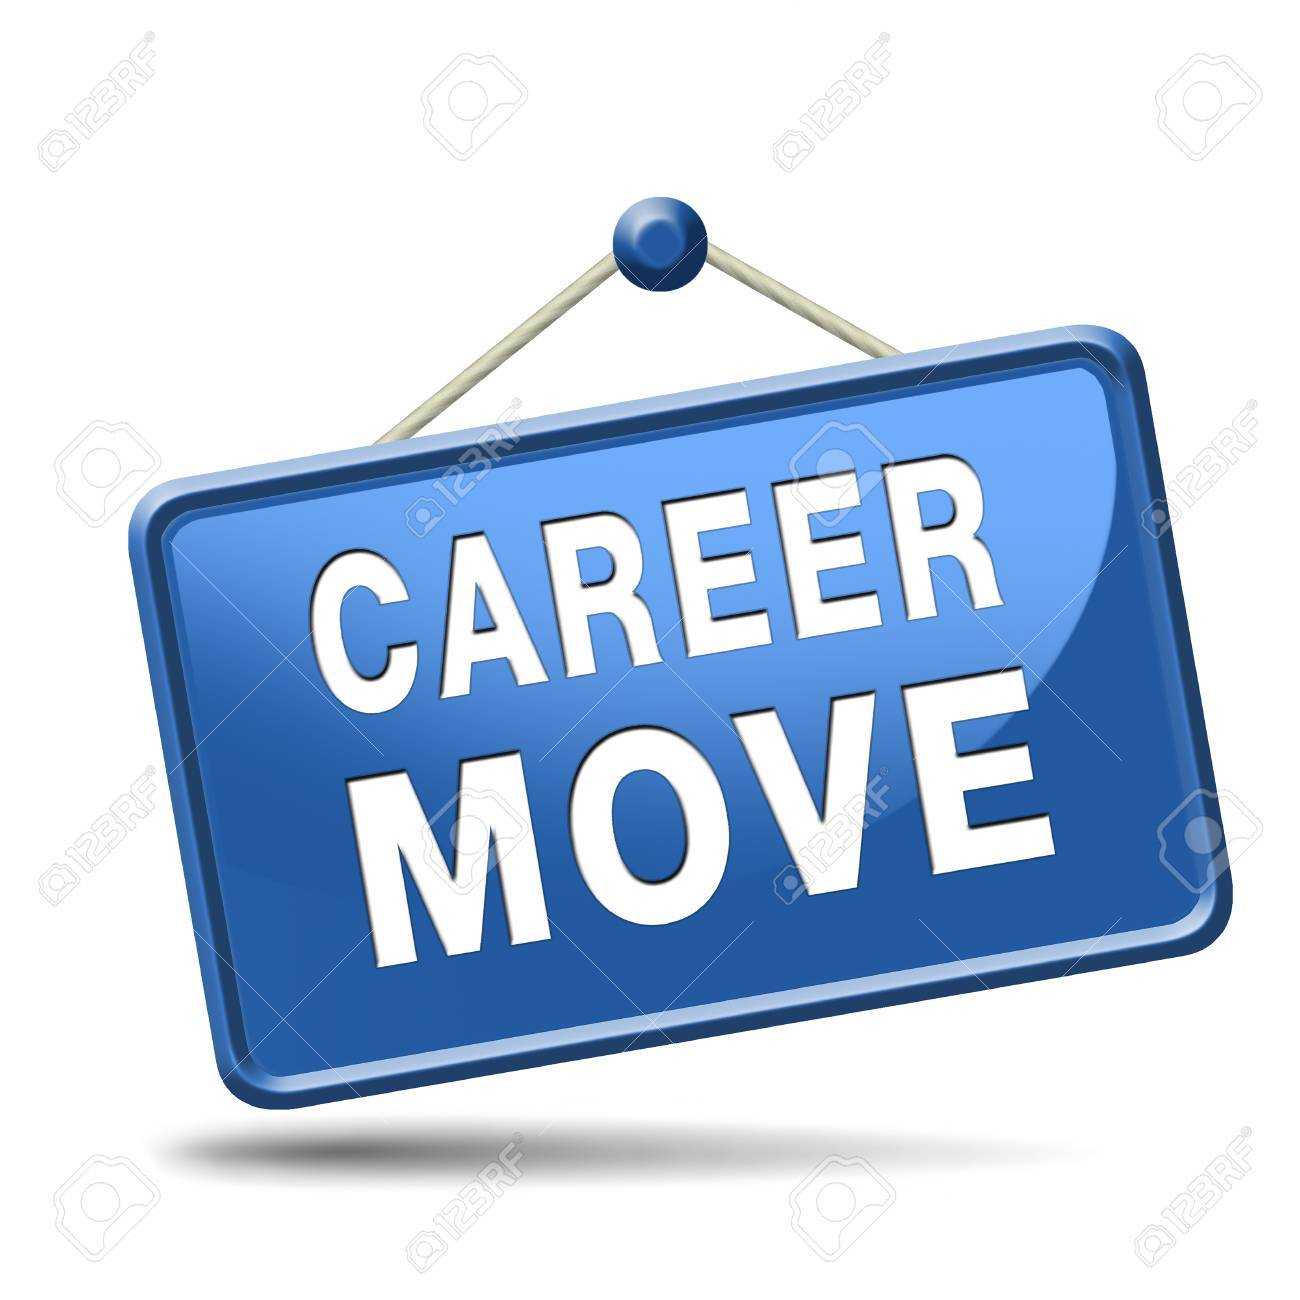 career move and ambition for personal development a nice job stock photo career move and ambition for personal development a nice job promotion or the search for a new job build a career button or job button